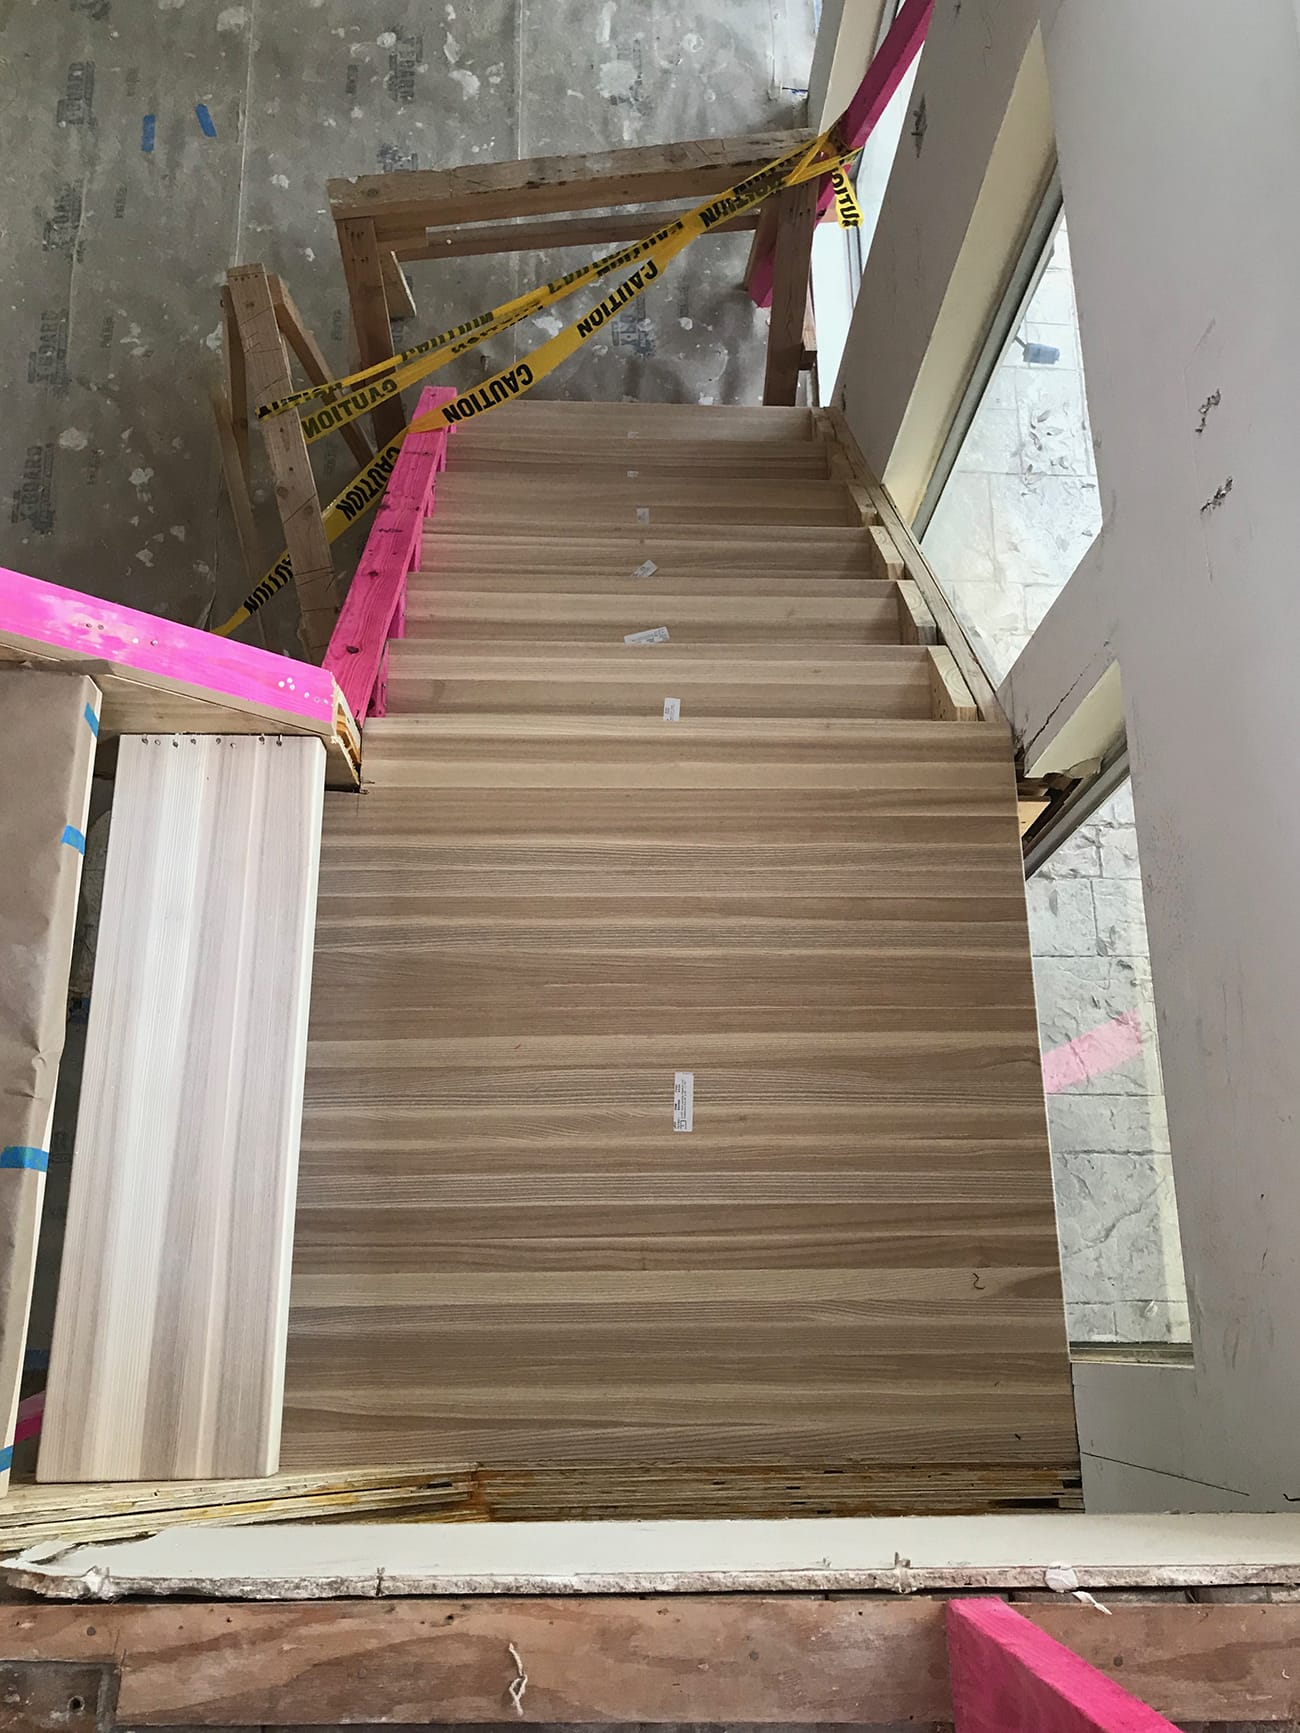 ash wood thick stair treads - - Sugar & Cloth Casa: Updating An Old Staircase by top Houston lifestyle blogger Ashley Rose of Sugar & Cloth